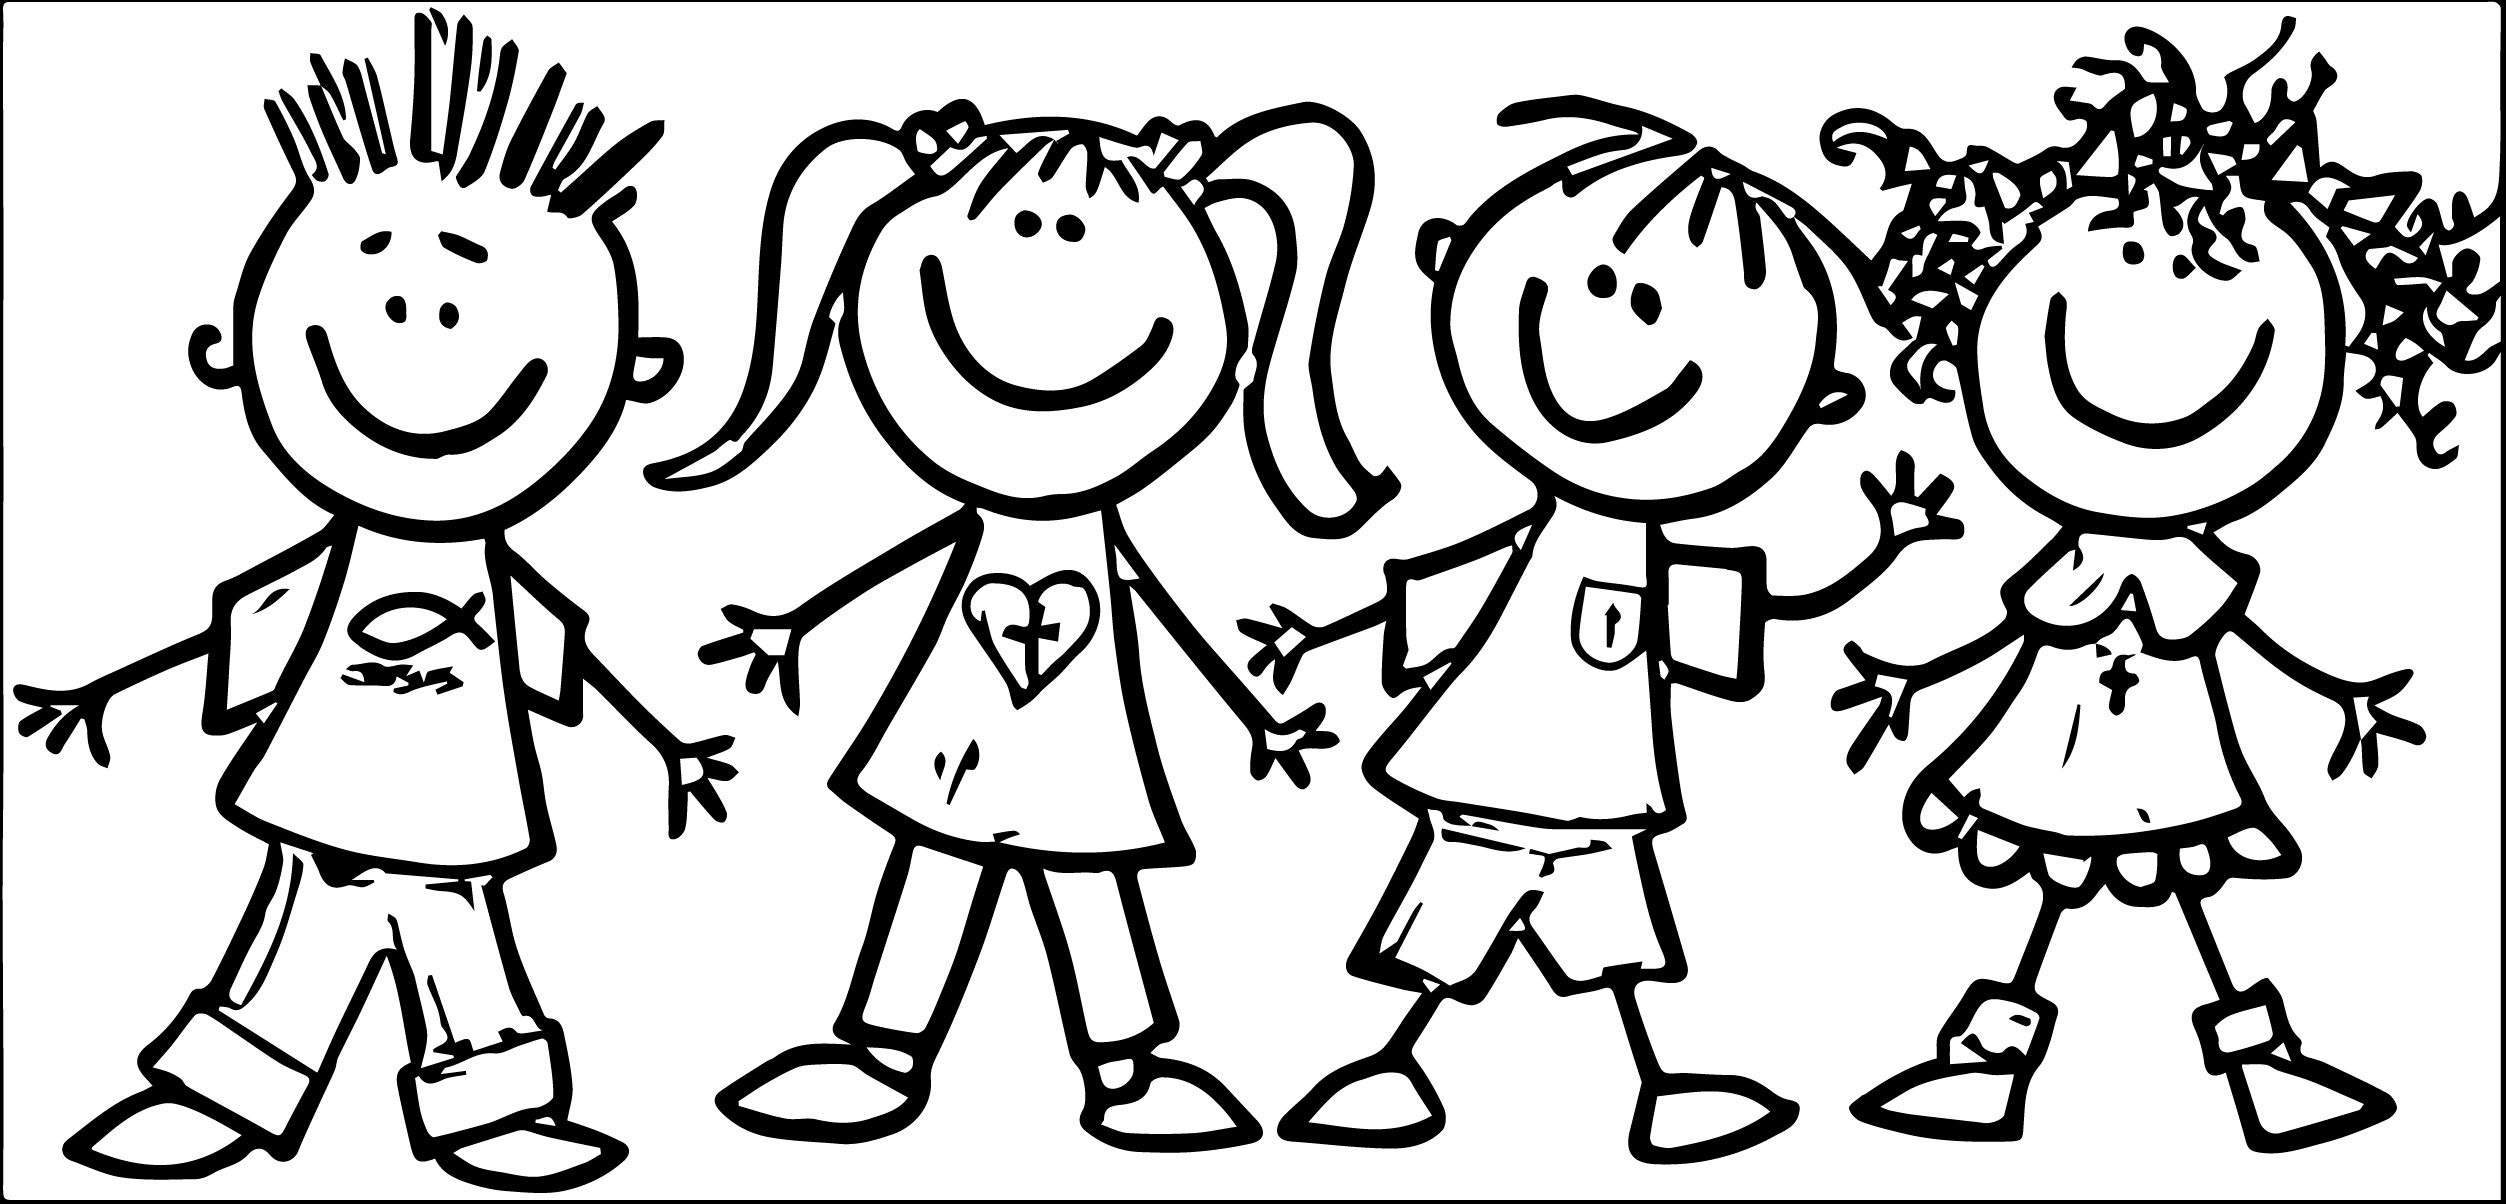 Kindergarten Clipart For Preschool On Clip Art Graphics